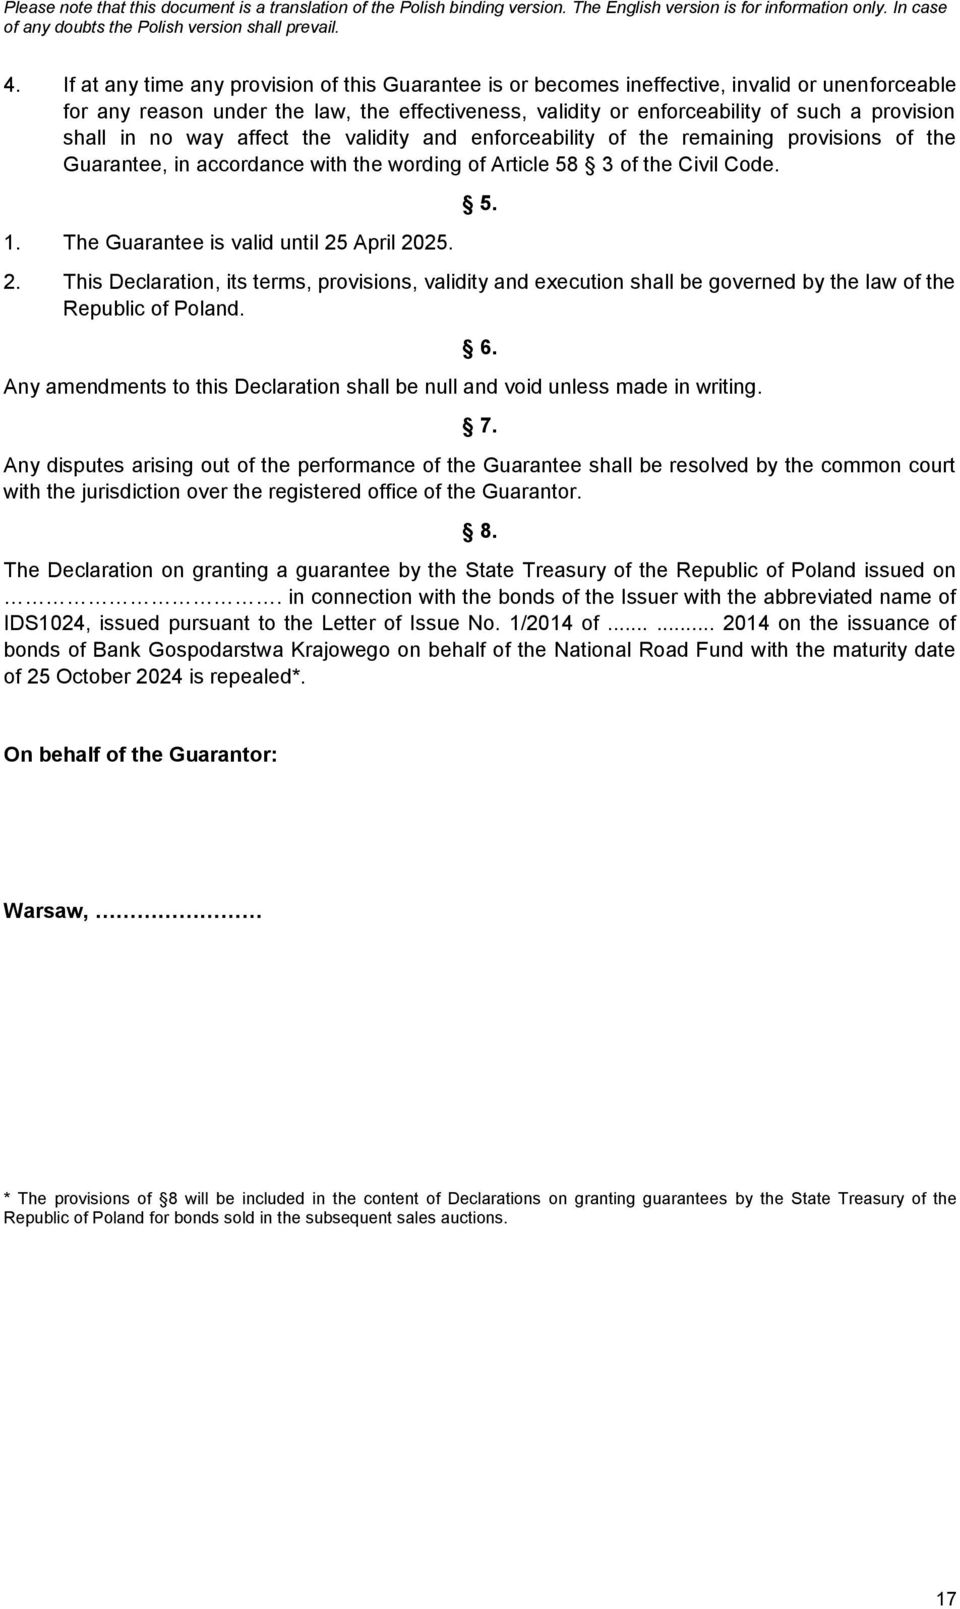 The Guarantee is valid until 25 April 2025. 5. 2. This Declaration, its terms, provisions, validity and execution shall be governed by the law of the Republic of Poland.